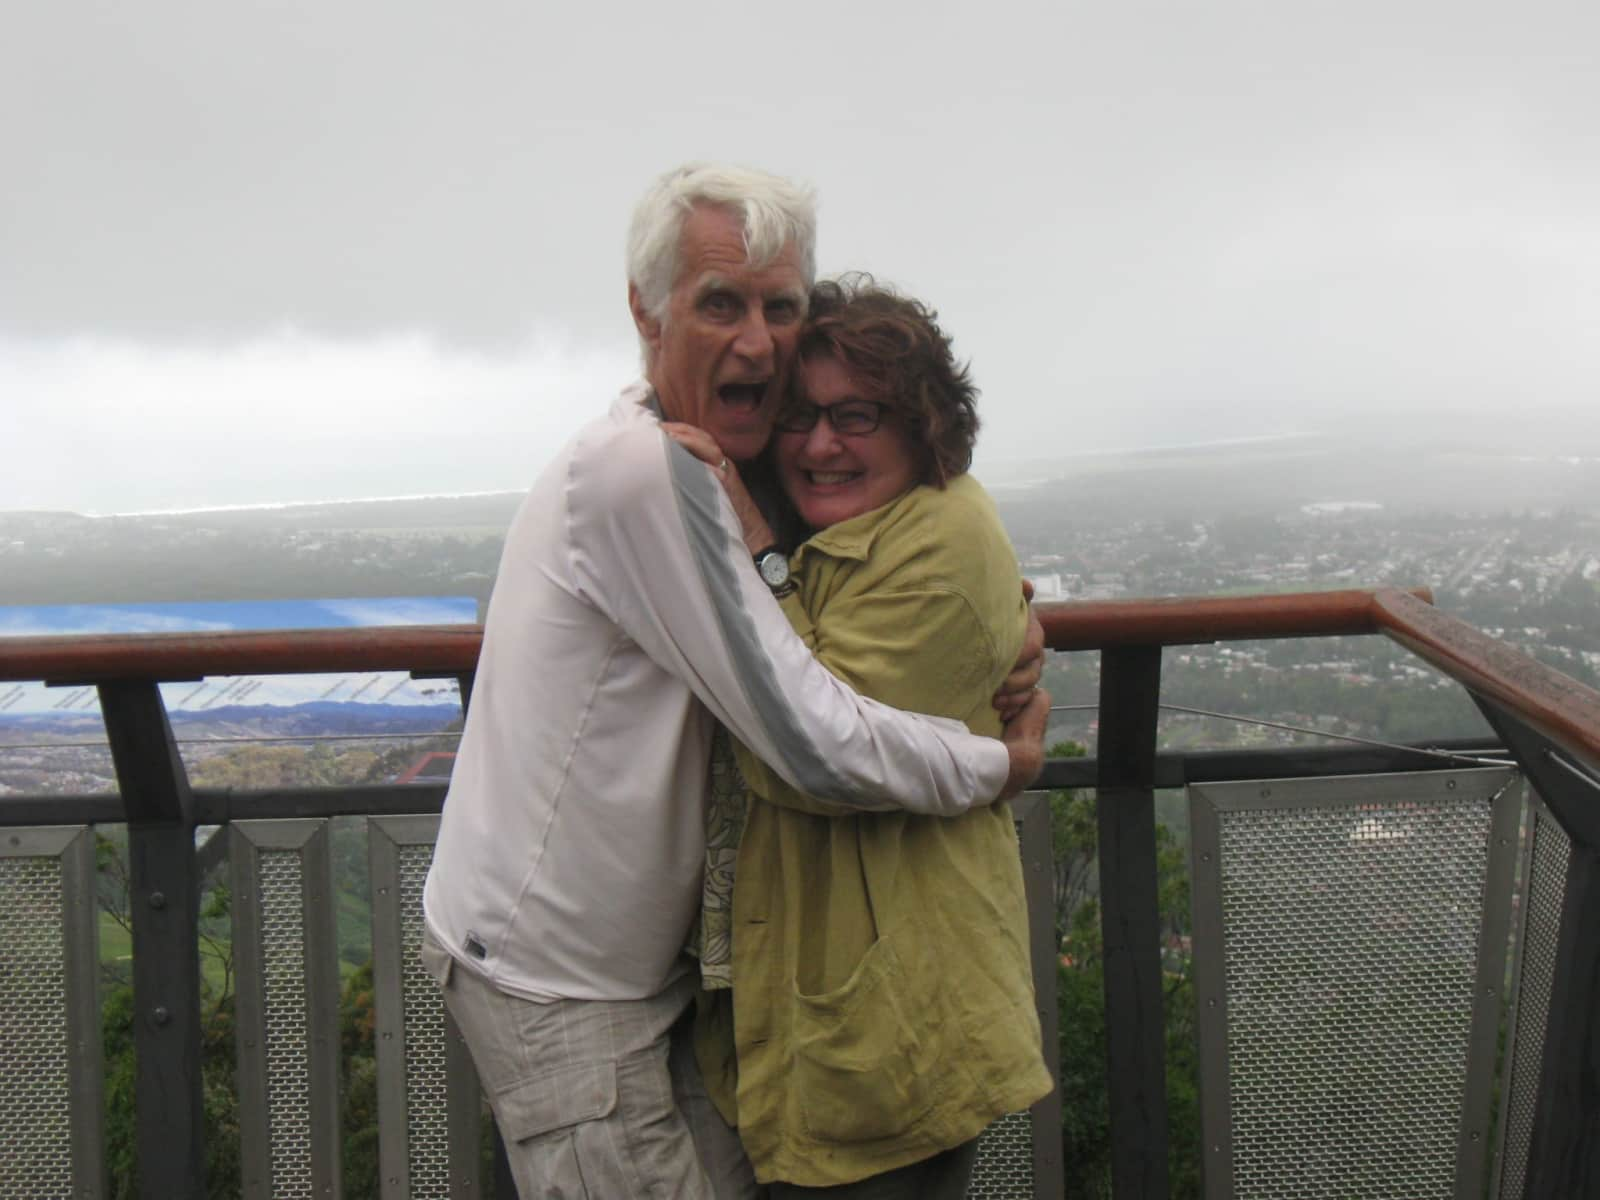 Sharon & Herman from Victoria, British Columbia, Canada